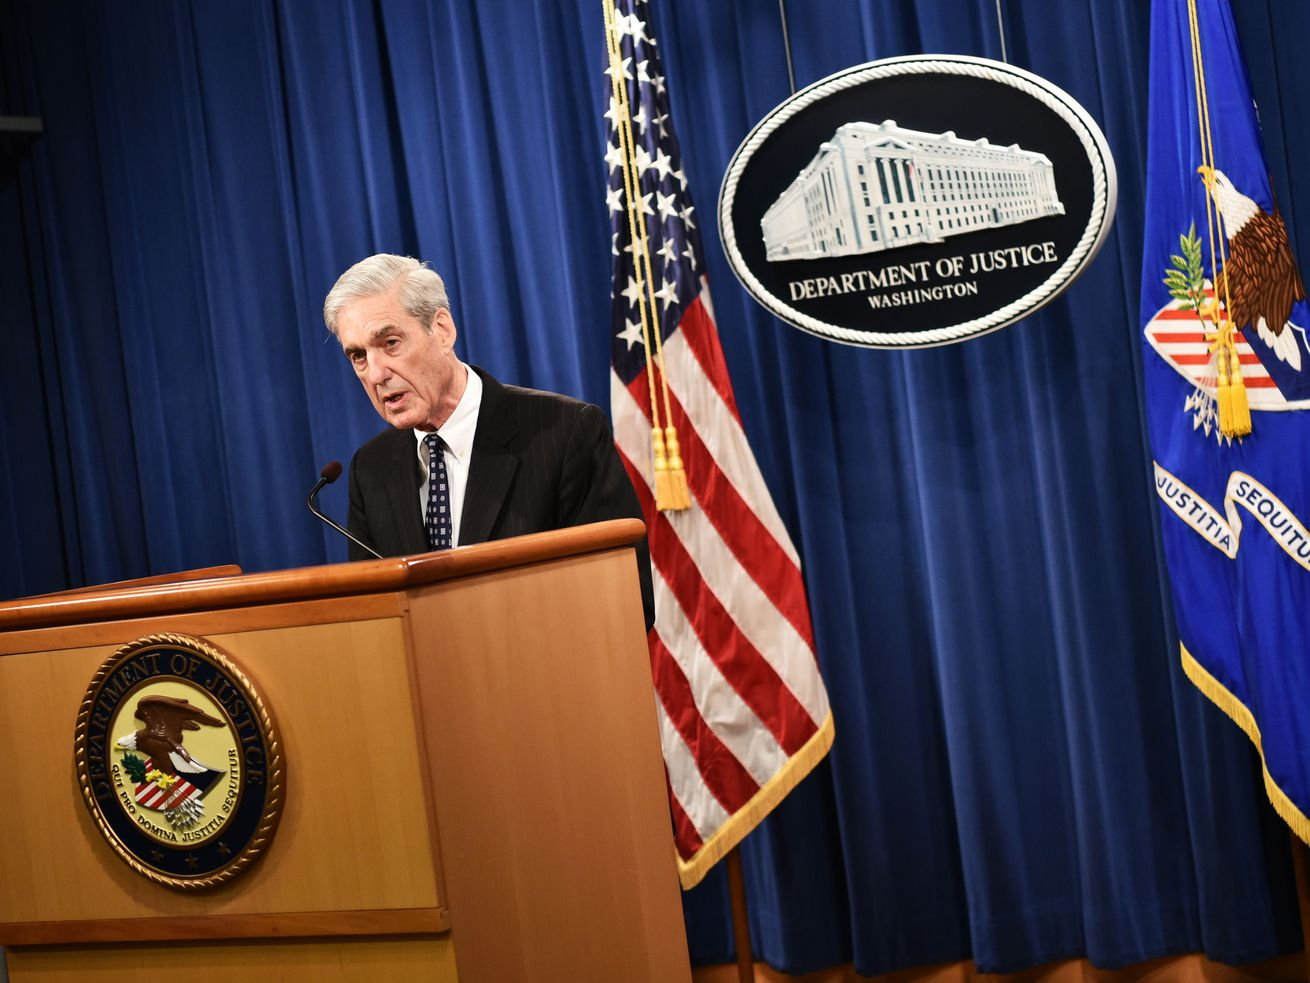 Special Counsel Robert Mueller speaks on the investigation into Russian interference in the 2016 Presidential election, at the US Justice Department in Washington, DC, on May 29, 2019.